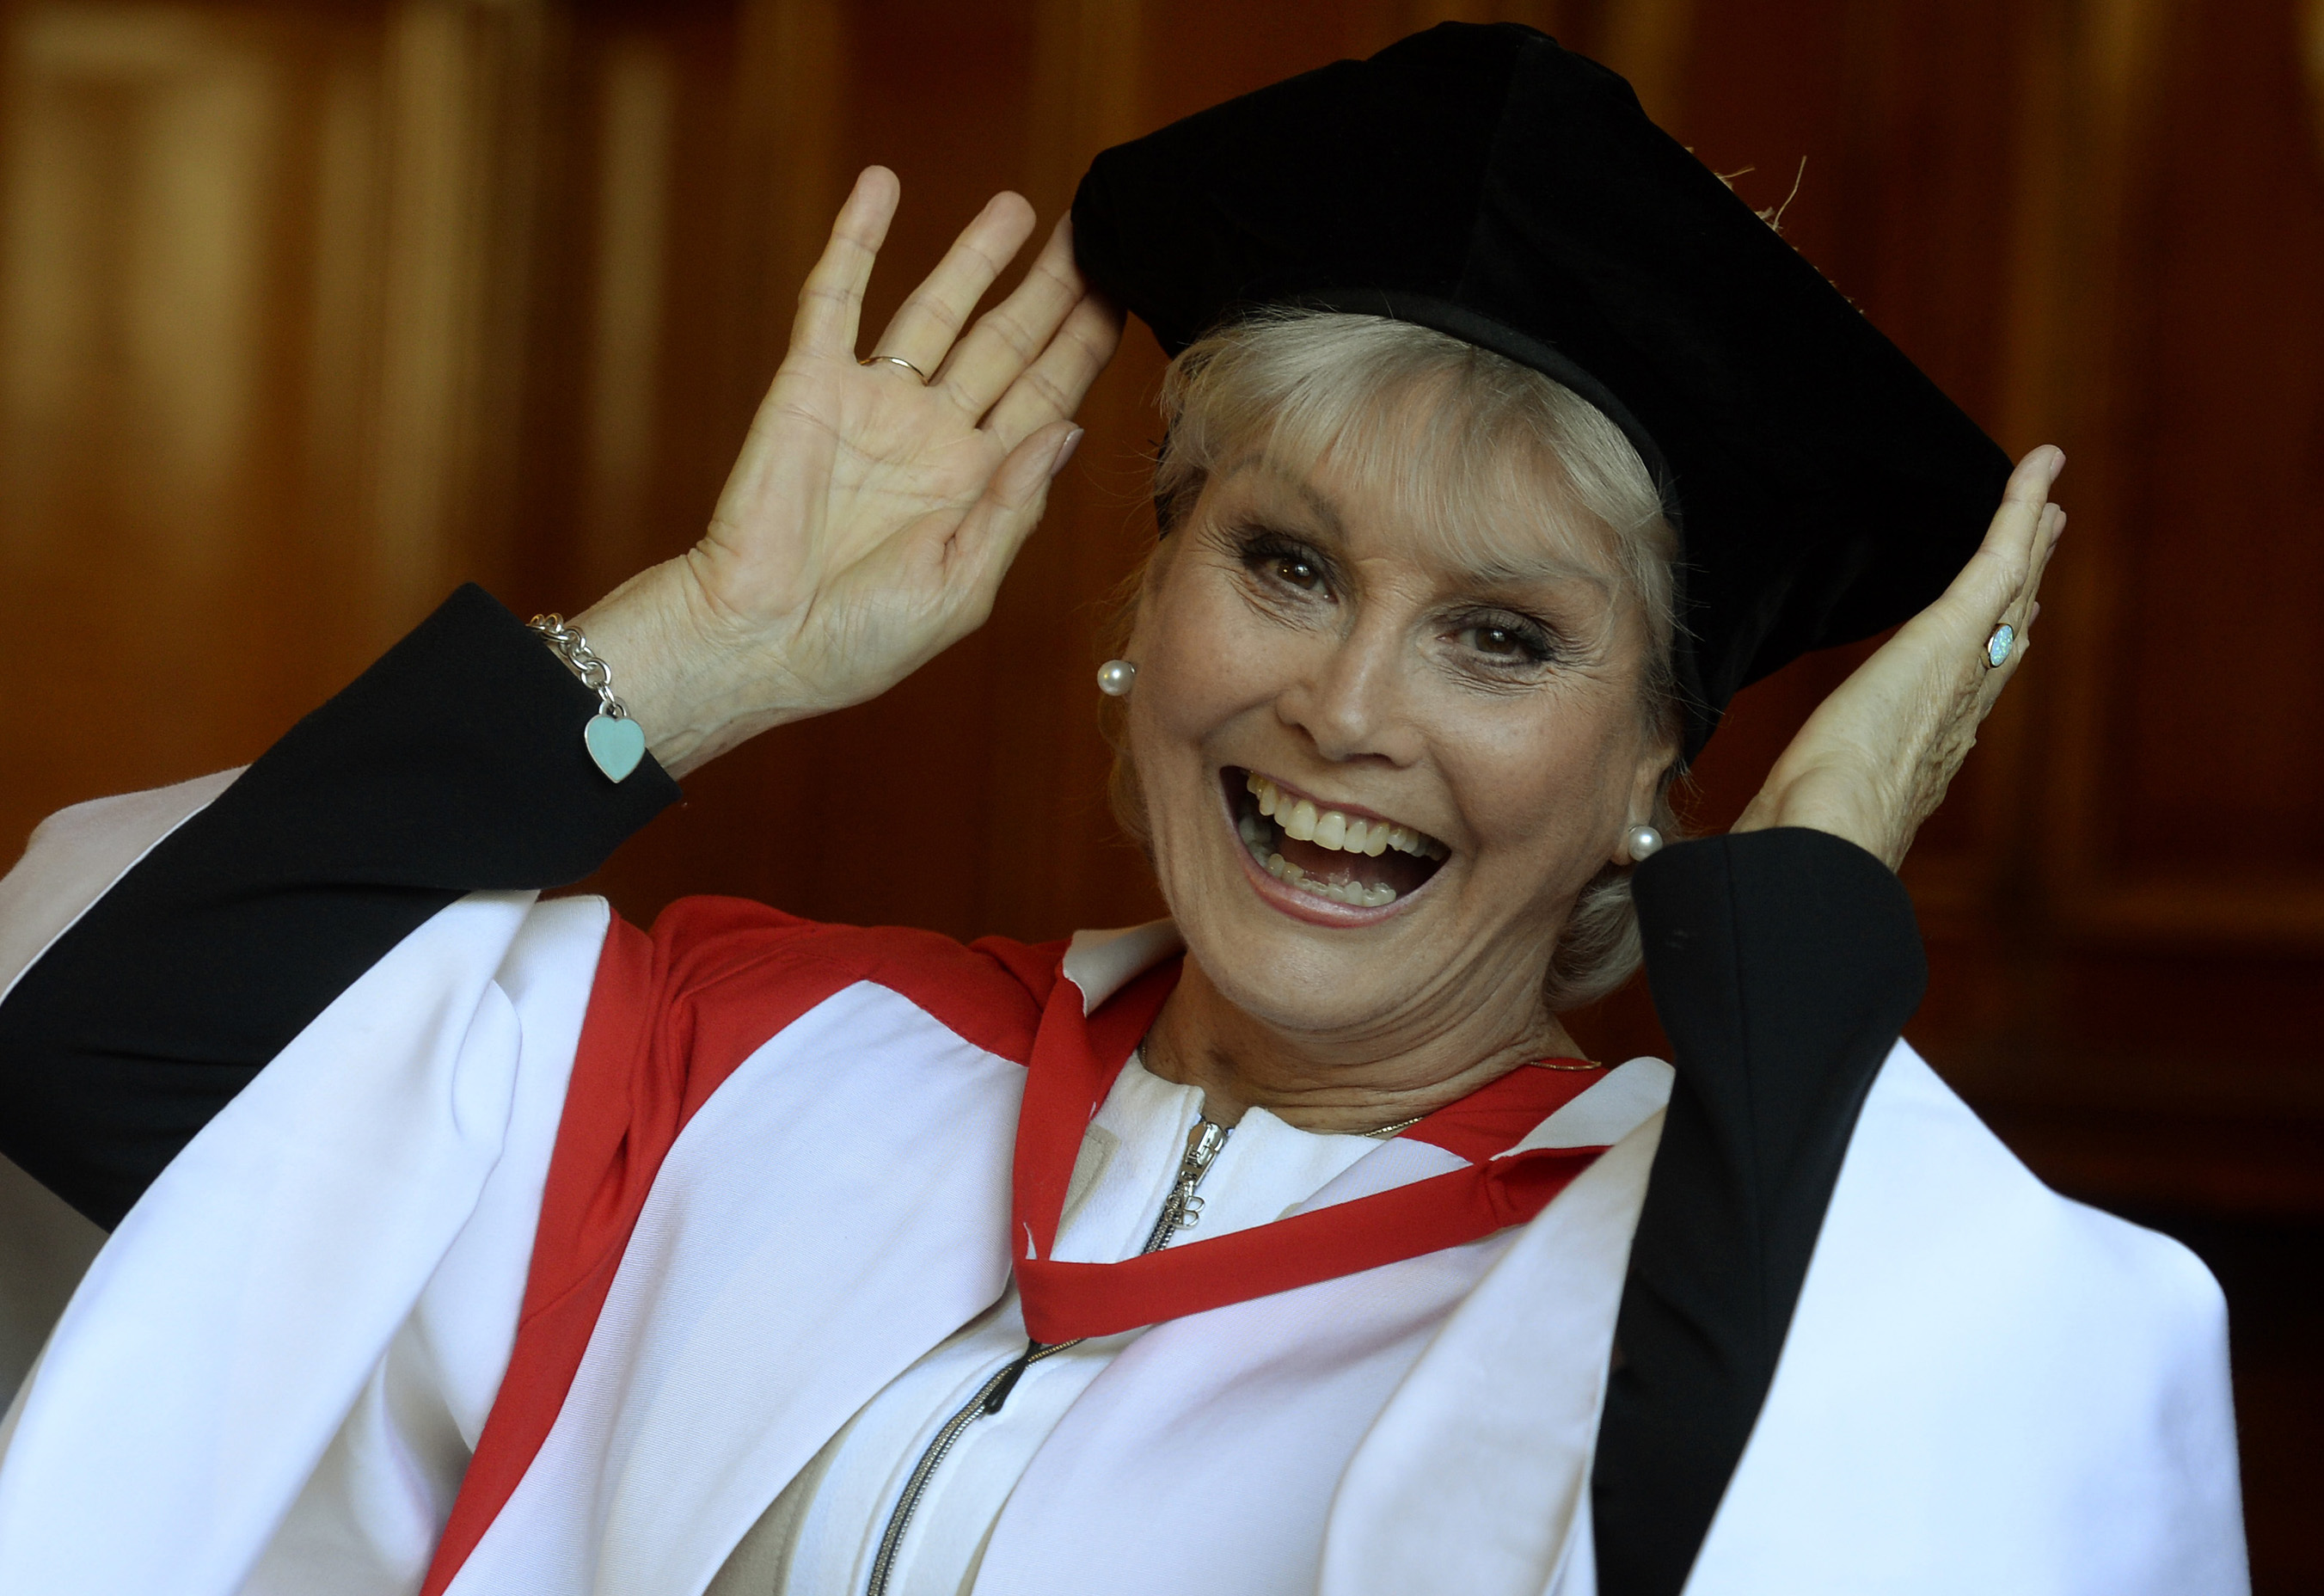 Angela Rippon awarded an honorary doctor of civil law degree at Newcastle Universityi n 2014. (Owen Humphreys/PA)